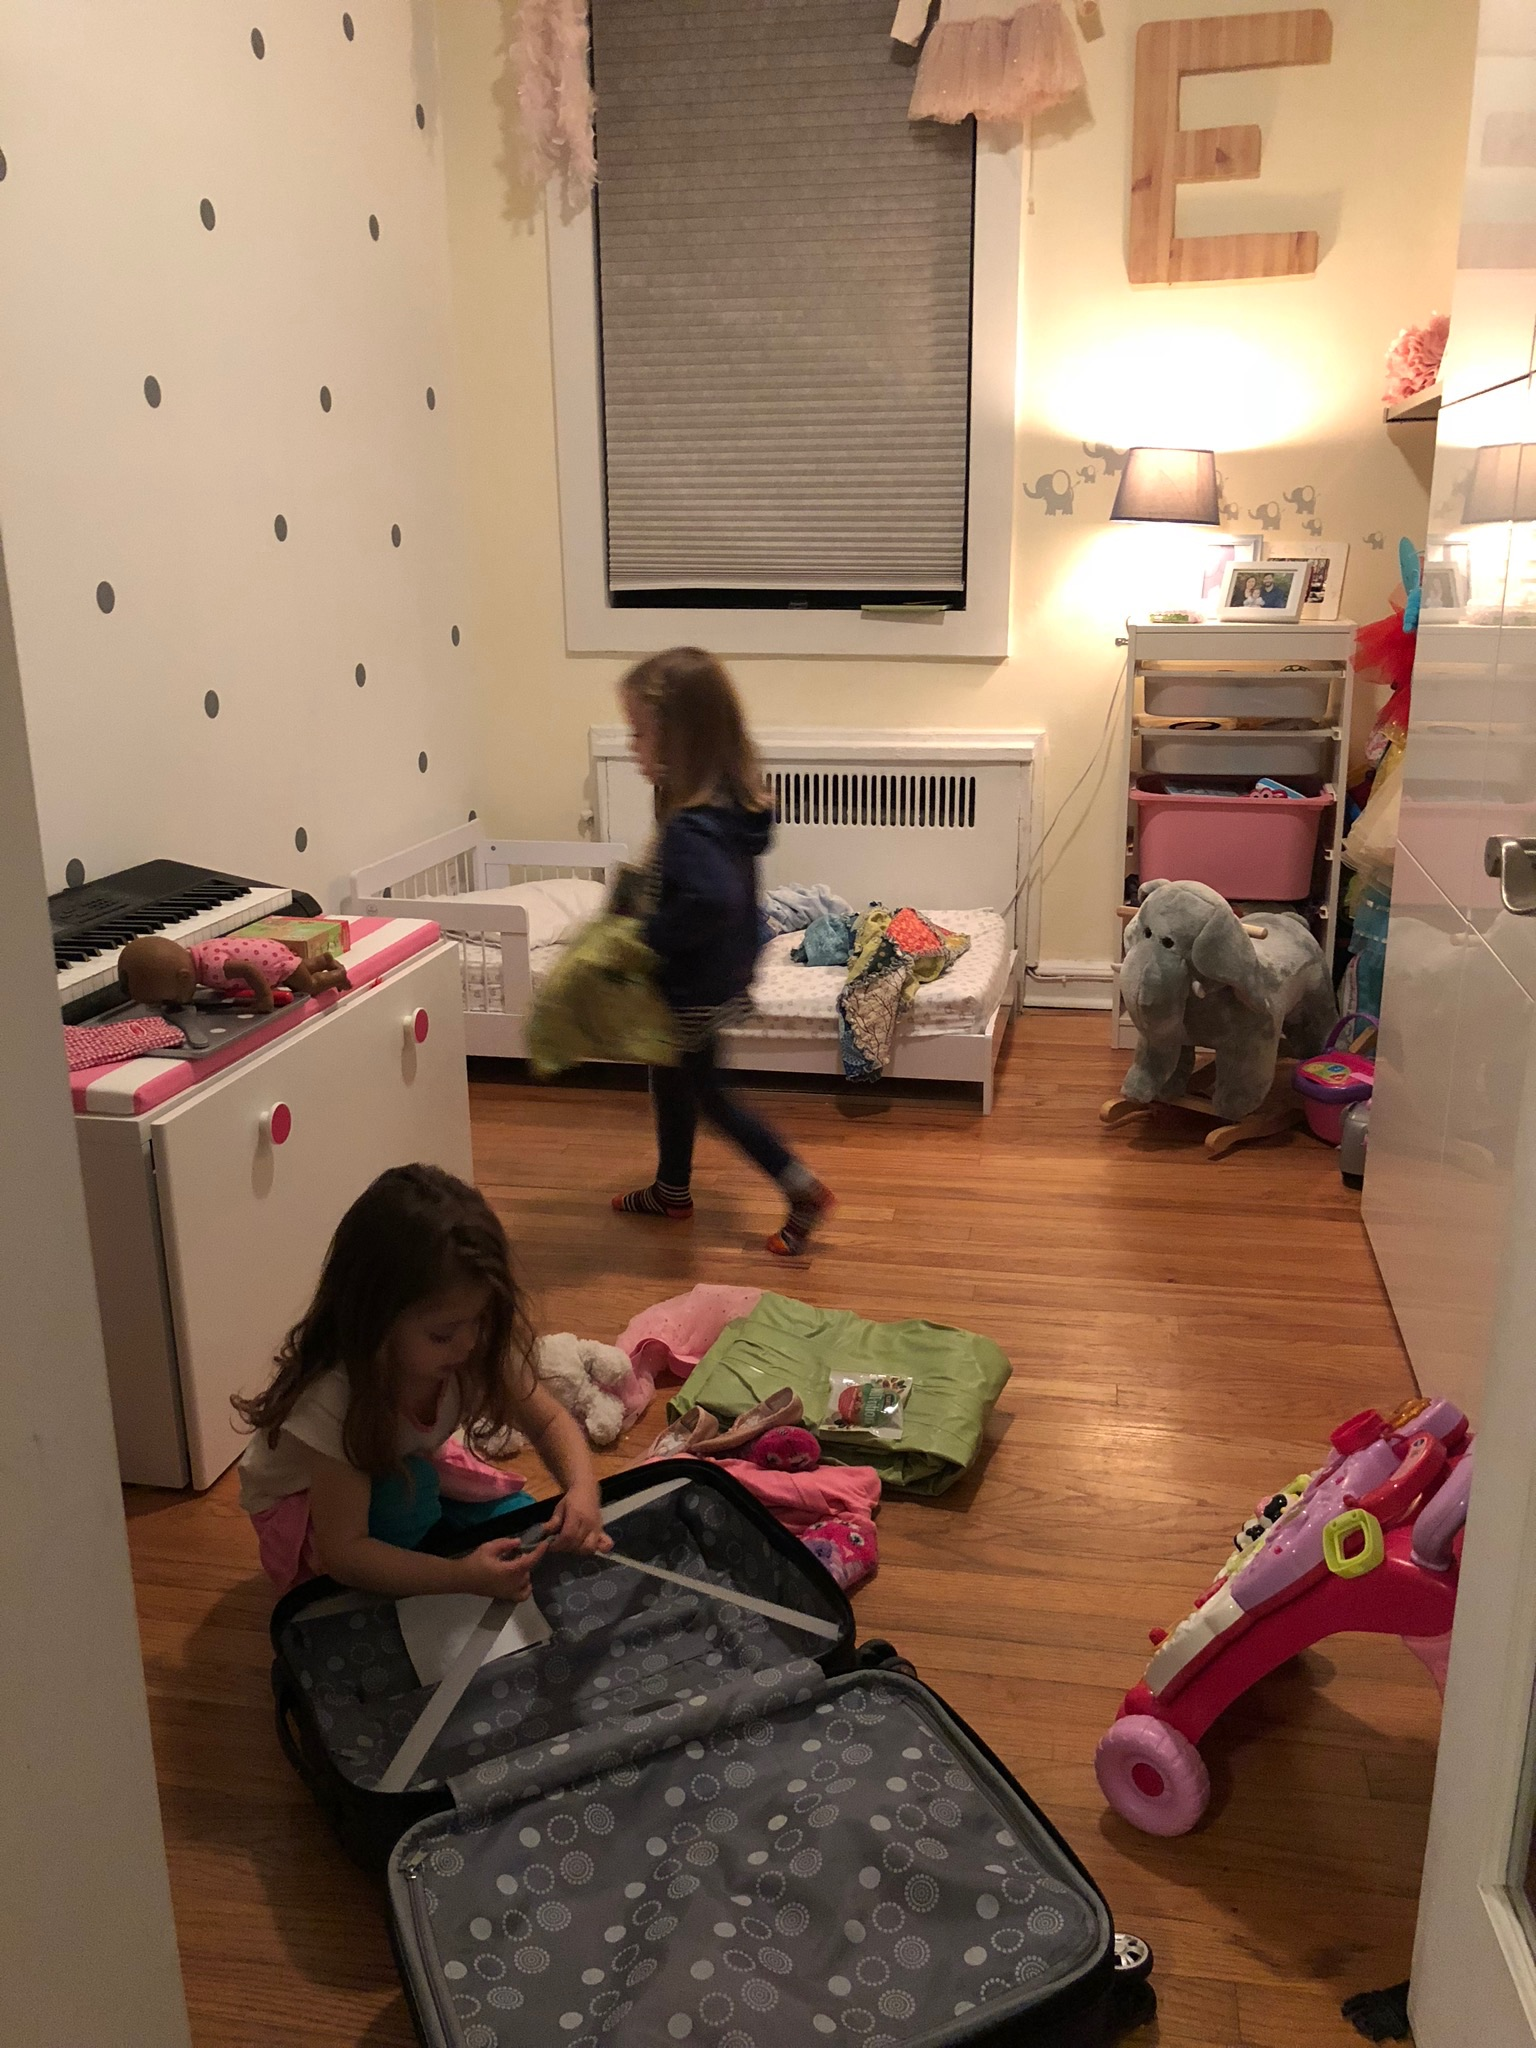 For Lucie's birthday last year, Richard, Jessa and Elle gave Lucie a sleeping bag with a note inviting her to bring it to sleepover for a whole weekend!!! So we set the date for a fun weekend in November. This is a pic of Elle helping Lucie unpack.